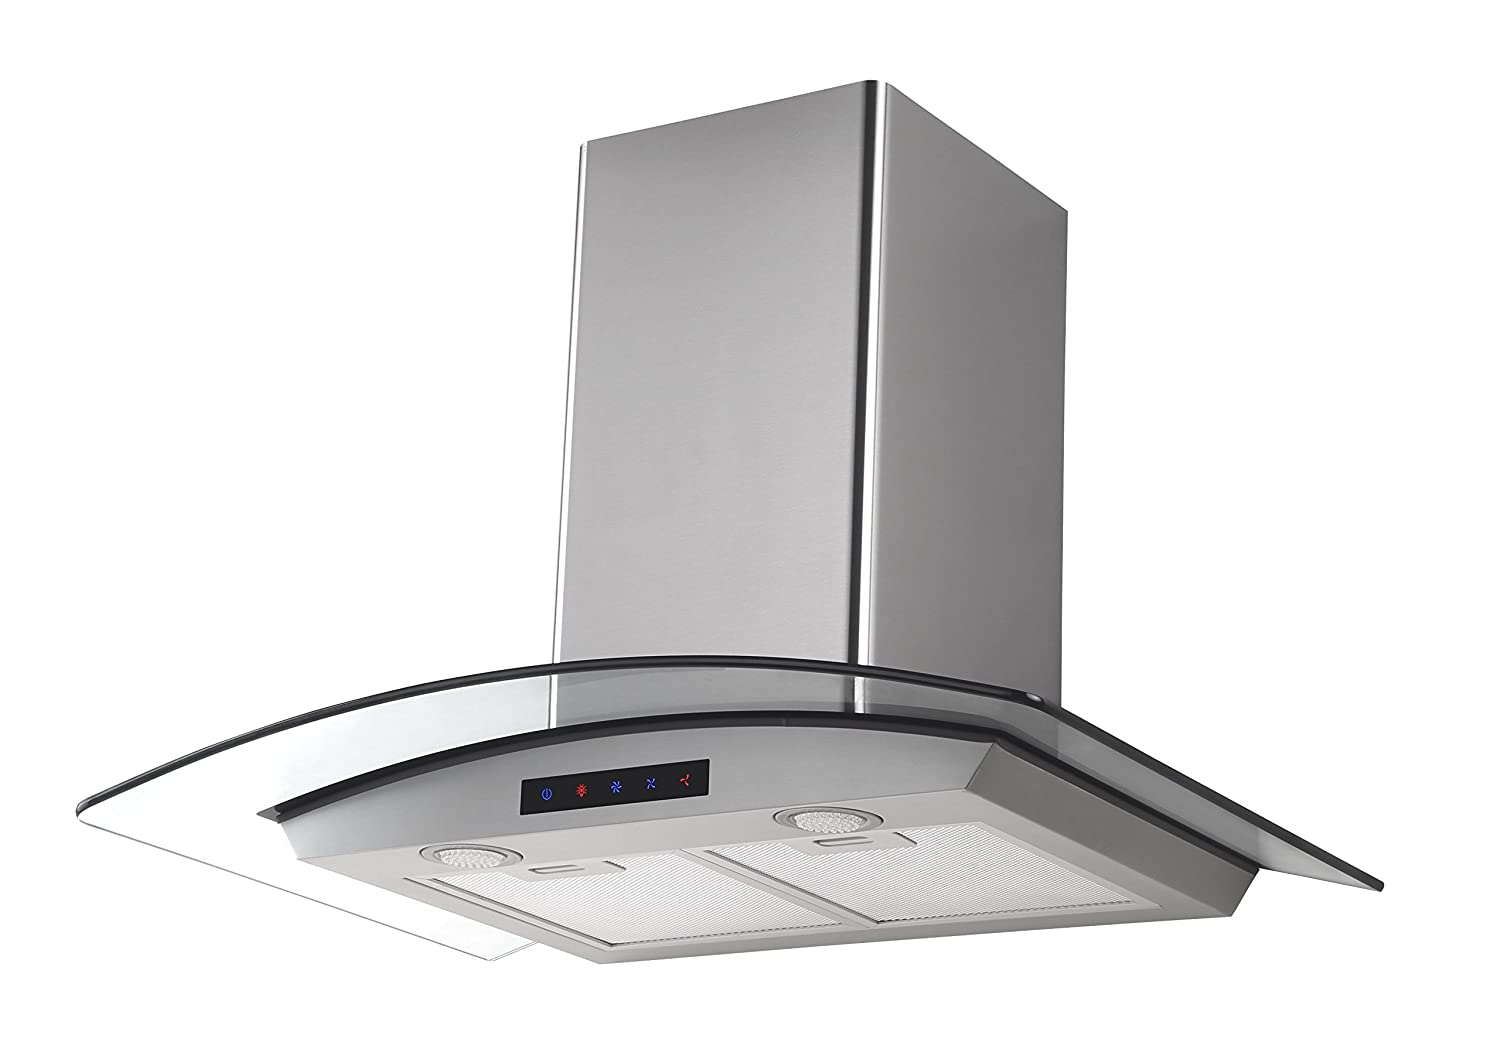 Kitchen Bath Collection HA75-LED Stainless Steel Wall-Mounted Kitchen Range Hood with Tempered Glass Canopy and Touch Screen Panel, 30